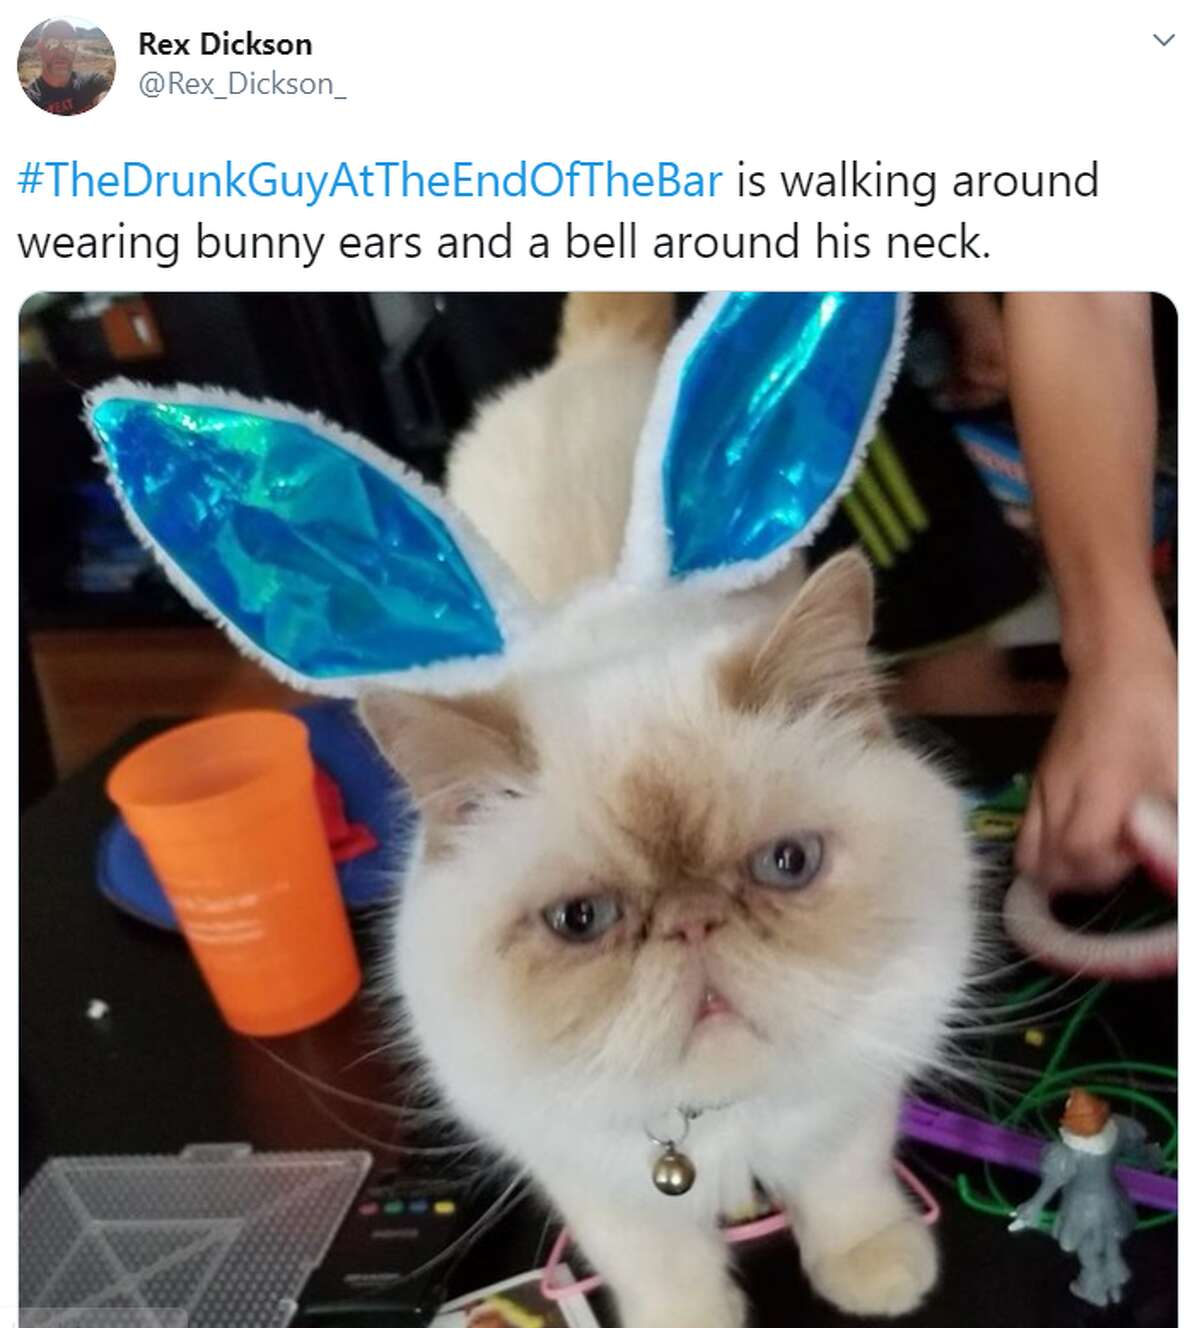 Twitter users uploaded photos of their pets with the hashtag #TheDrunkGuyAtTheEndOfTheBar and described the adorable animals' antics as if they were inebriated bar patrons, an annoyance essentially absent from a world mostly on lockdown due to COVID-19.